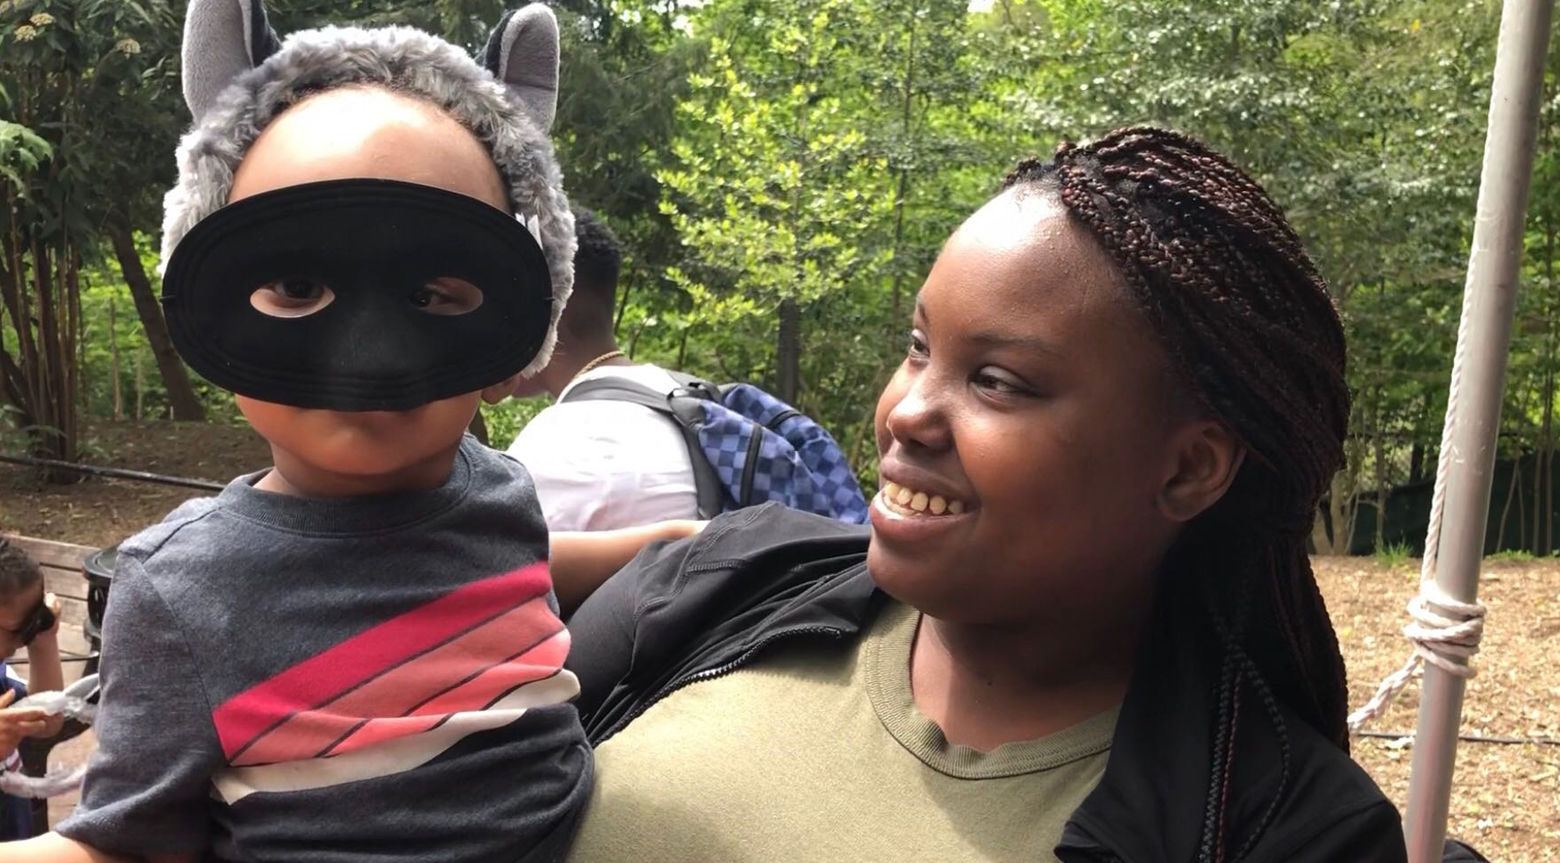 Mechelle Prophet of Forestville, Maryland came to the zoo with her extended family and godchildren. (WTOP/Kristi King)